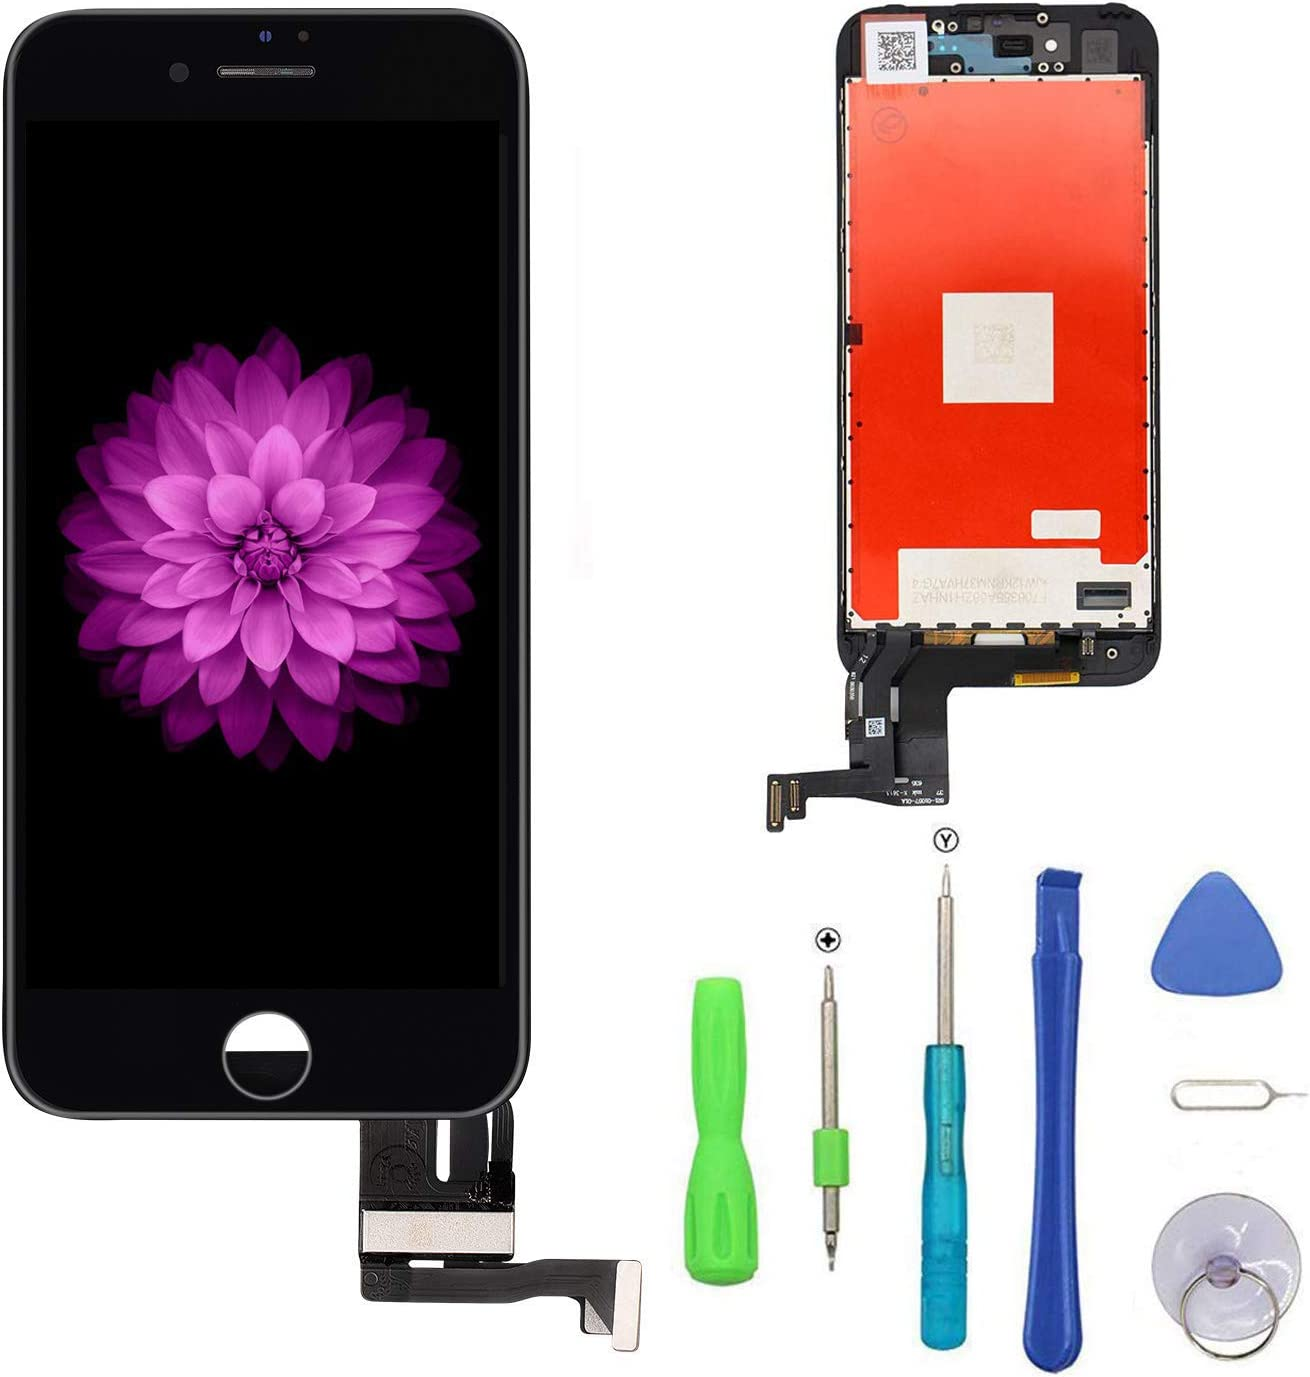 FFtopu iPhone 7 Plus Screen Replacement Black 5.5'', LCD Display and 3D Touch Screen Digitizer Replacement Full Assembly for iPhone 7 Plus Screen with Repair Tool Kit